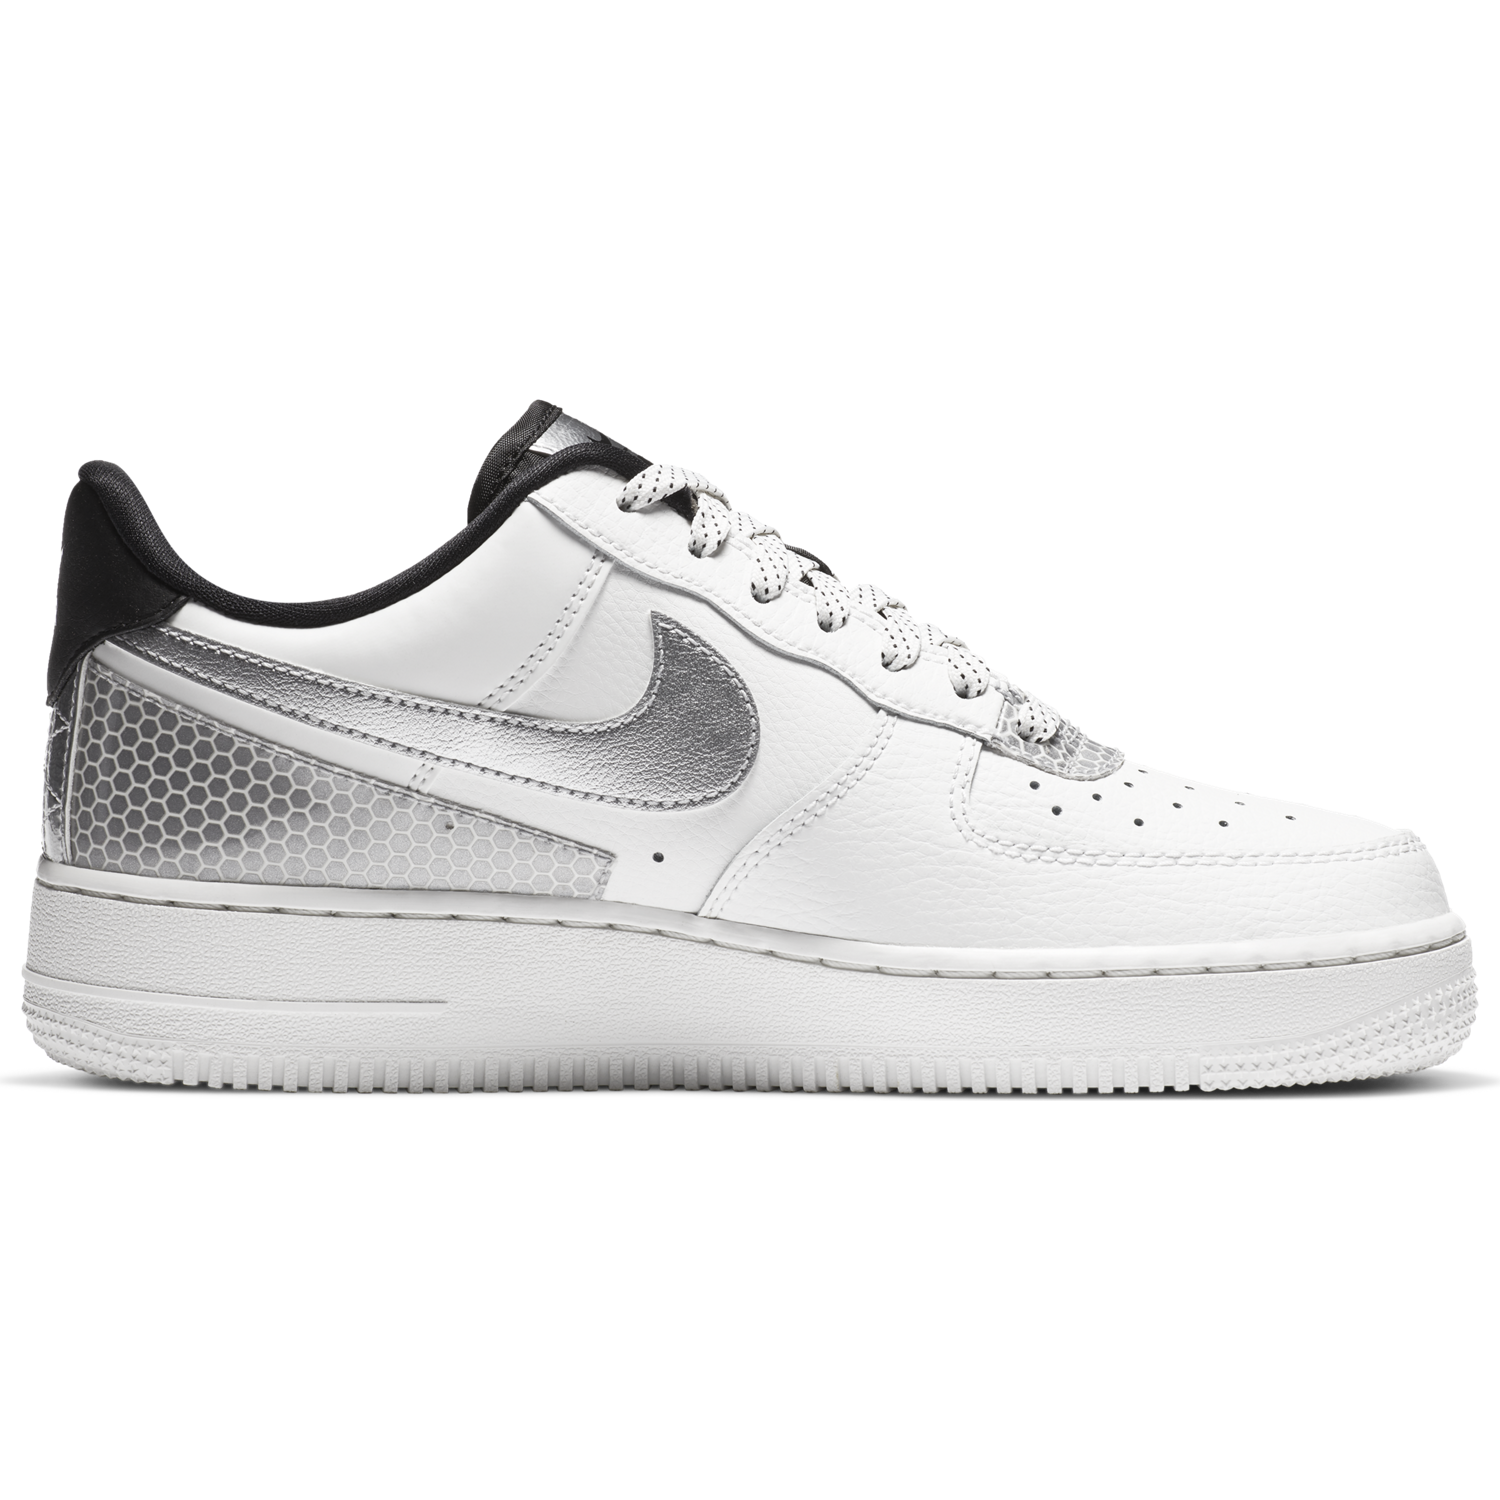 NIKE W'S FOOTWEAR W AIR FORCE 1 '07 SE - SUMMIT WHITE